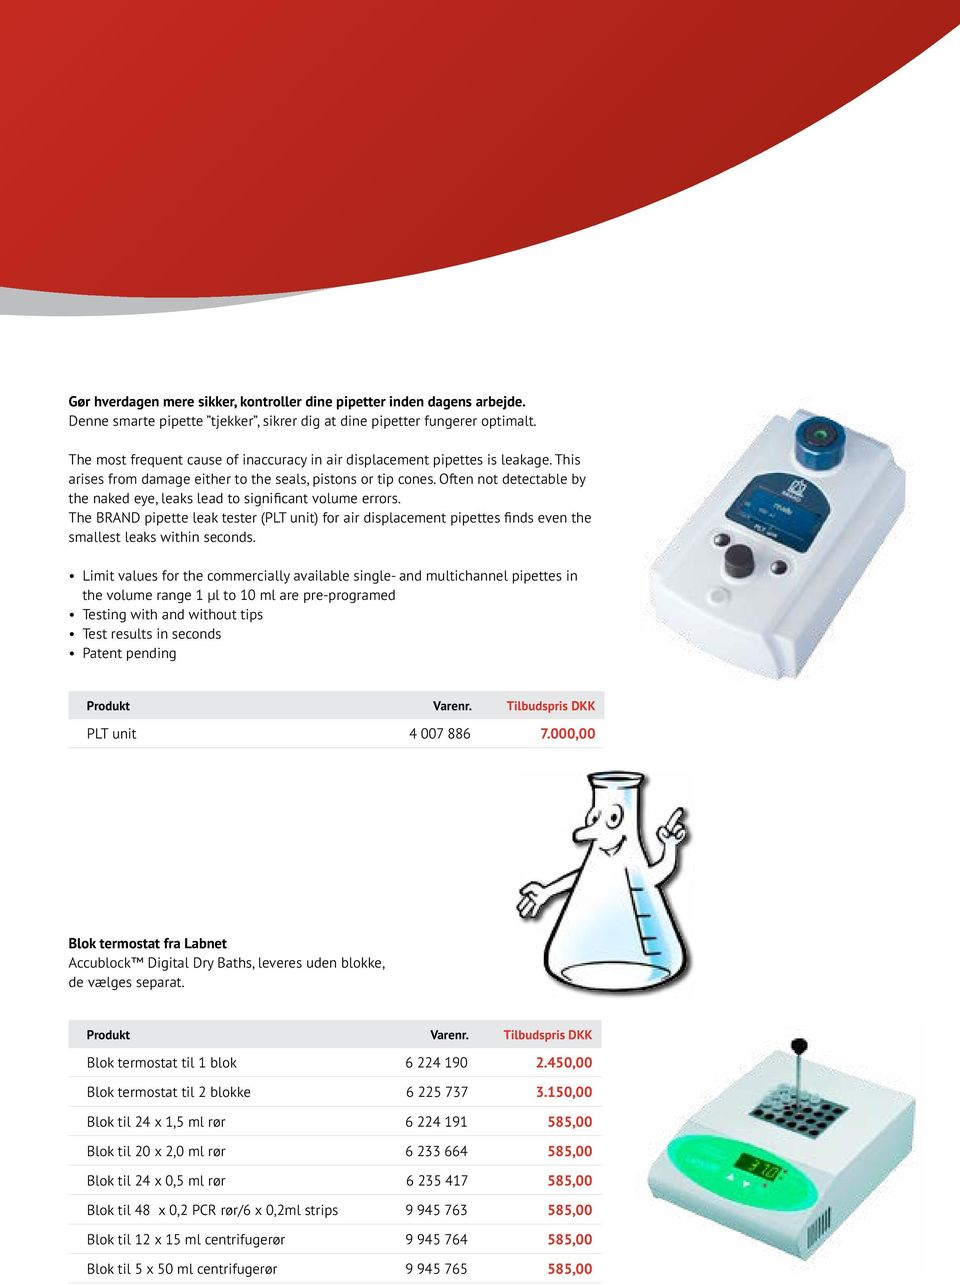 Often not detectable by the naked eye, leaks lead to significant volume errors. The BRAND pipette leak tester (PLT unit) for air displacement pipettes finds even the smallest leaks within seconds.